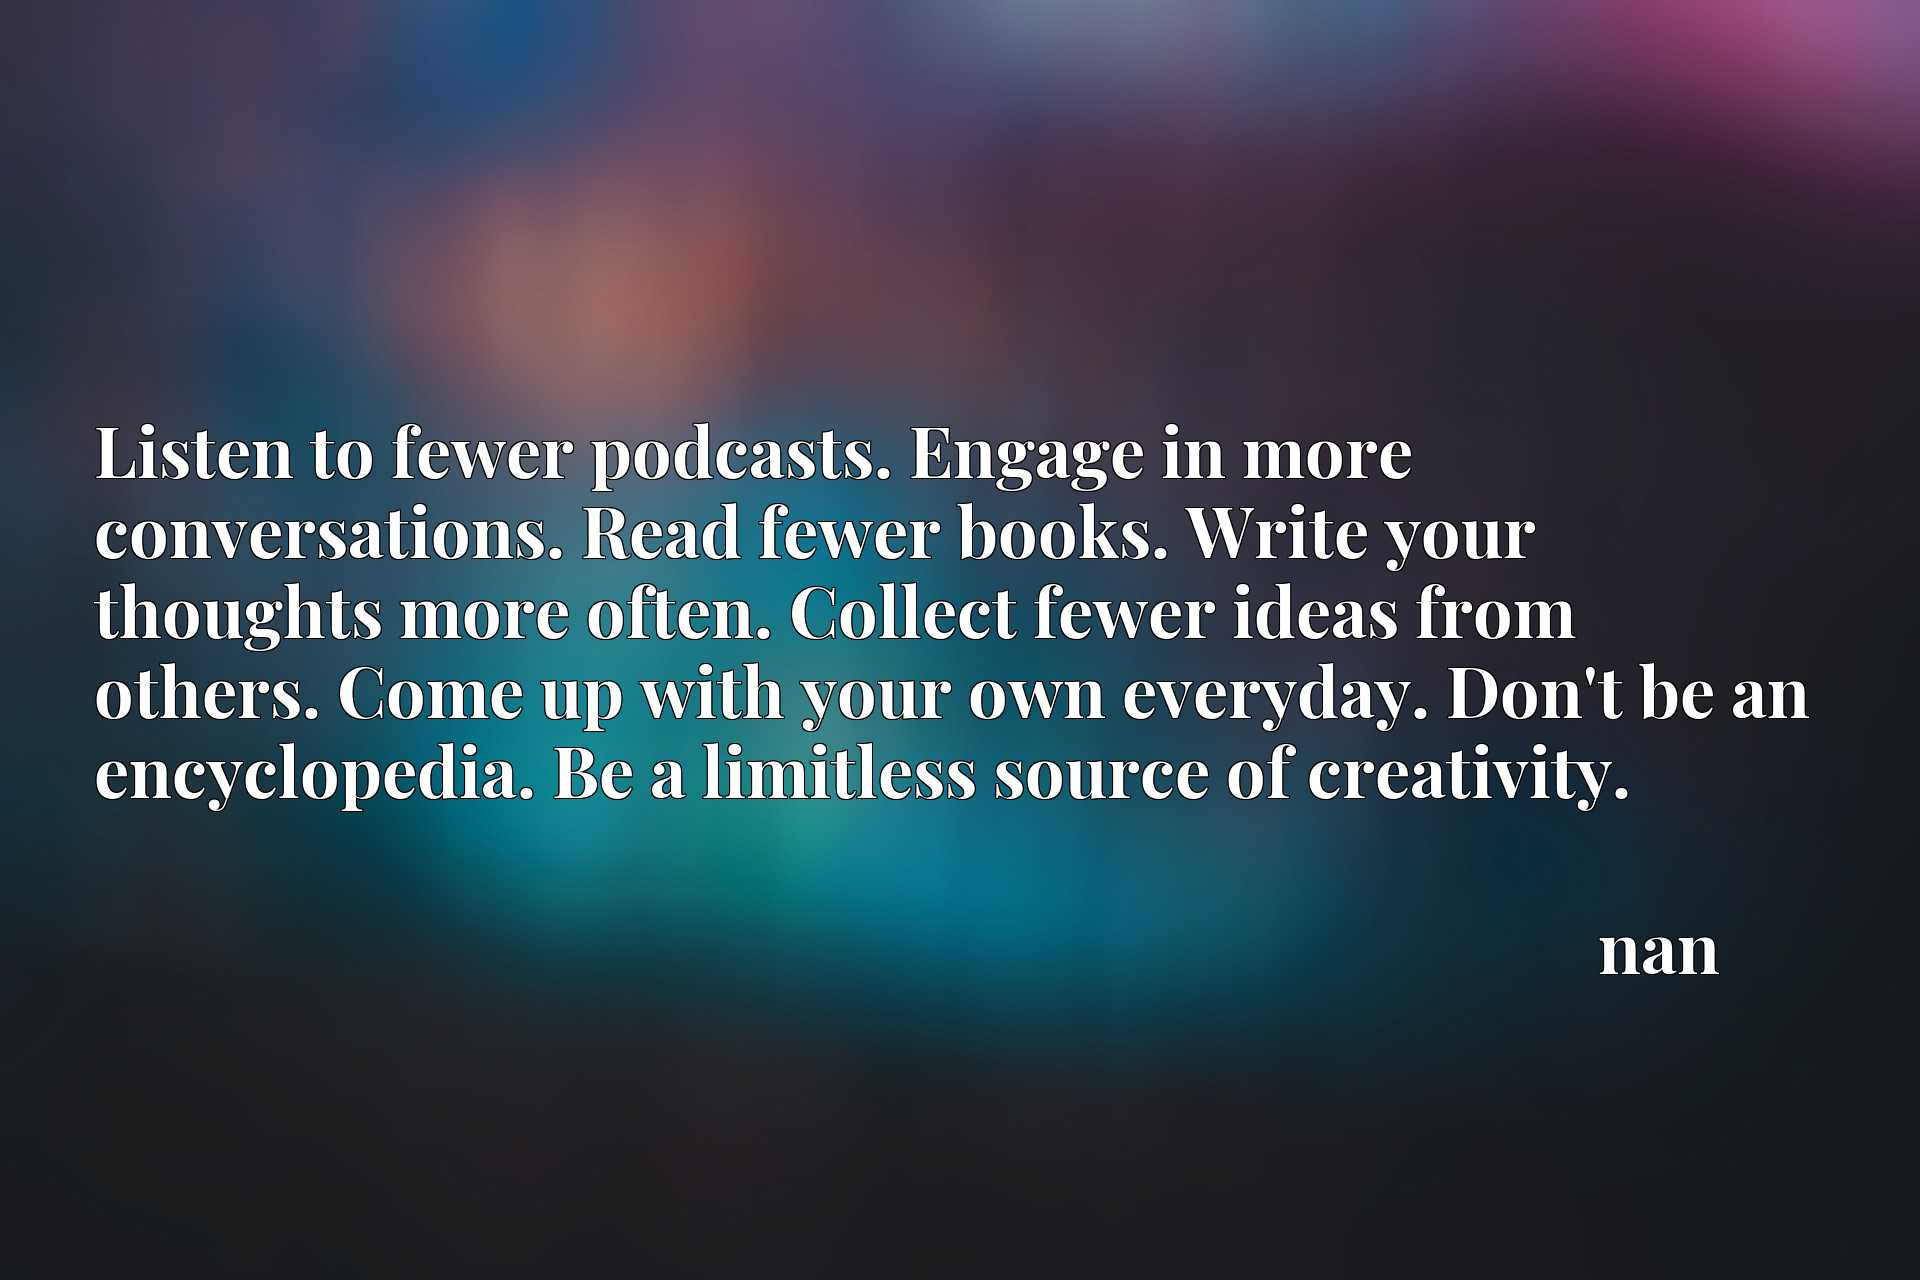 Listen to fewer podcasts. Engage in more conversations. Read fewer books. Write your thoughts more often. Collect fewer ideas from others. Come up with your own everyday. Don't be an encyclopedia. Be a limitless source of creativity.